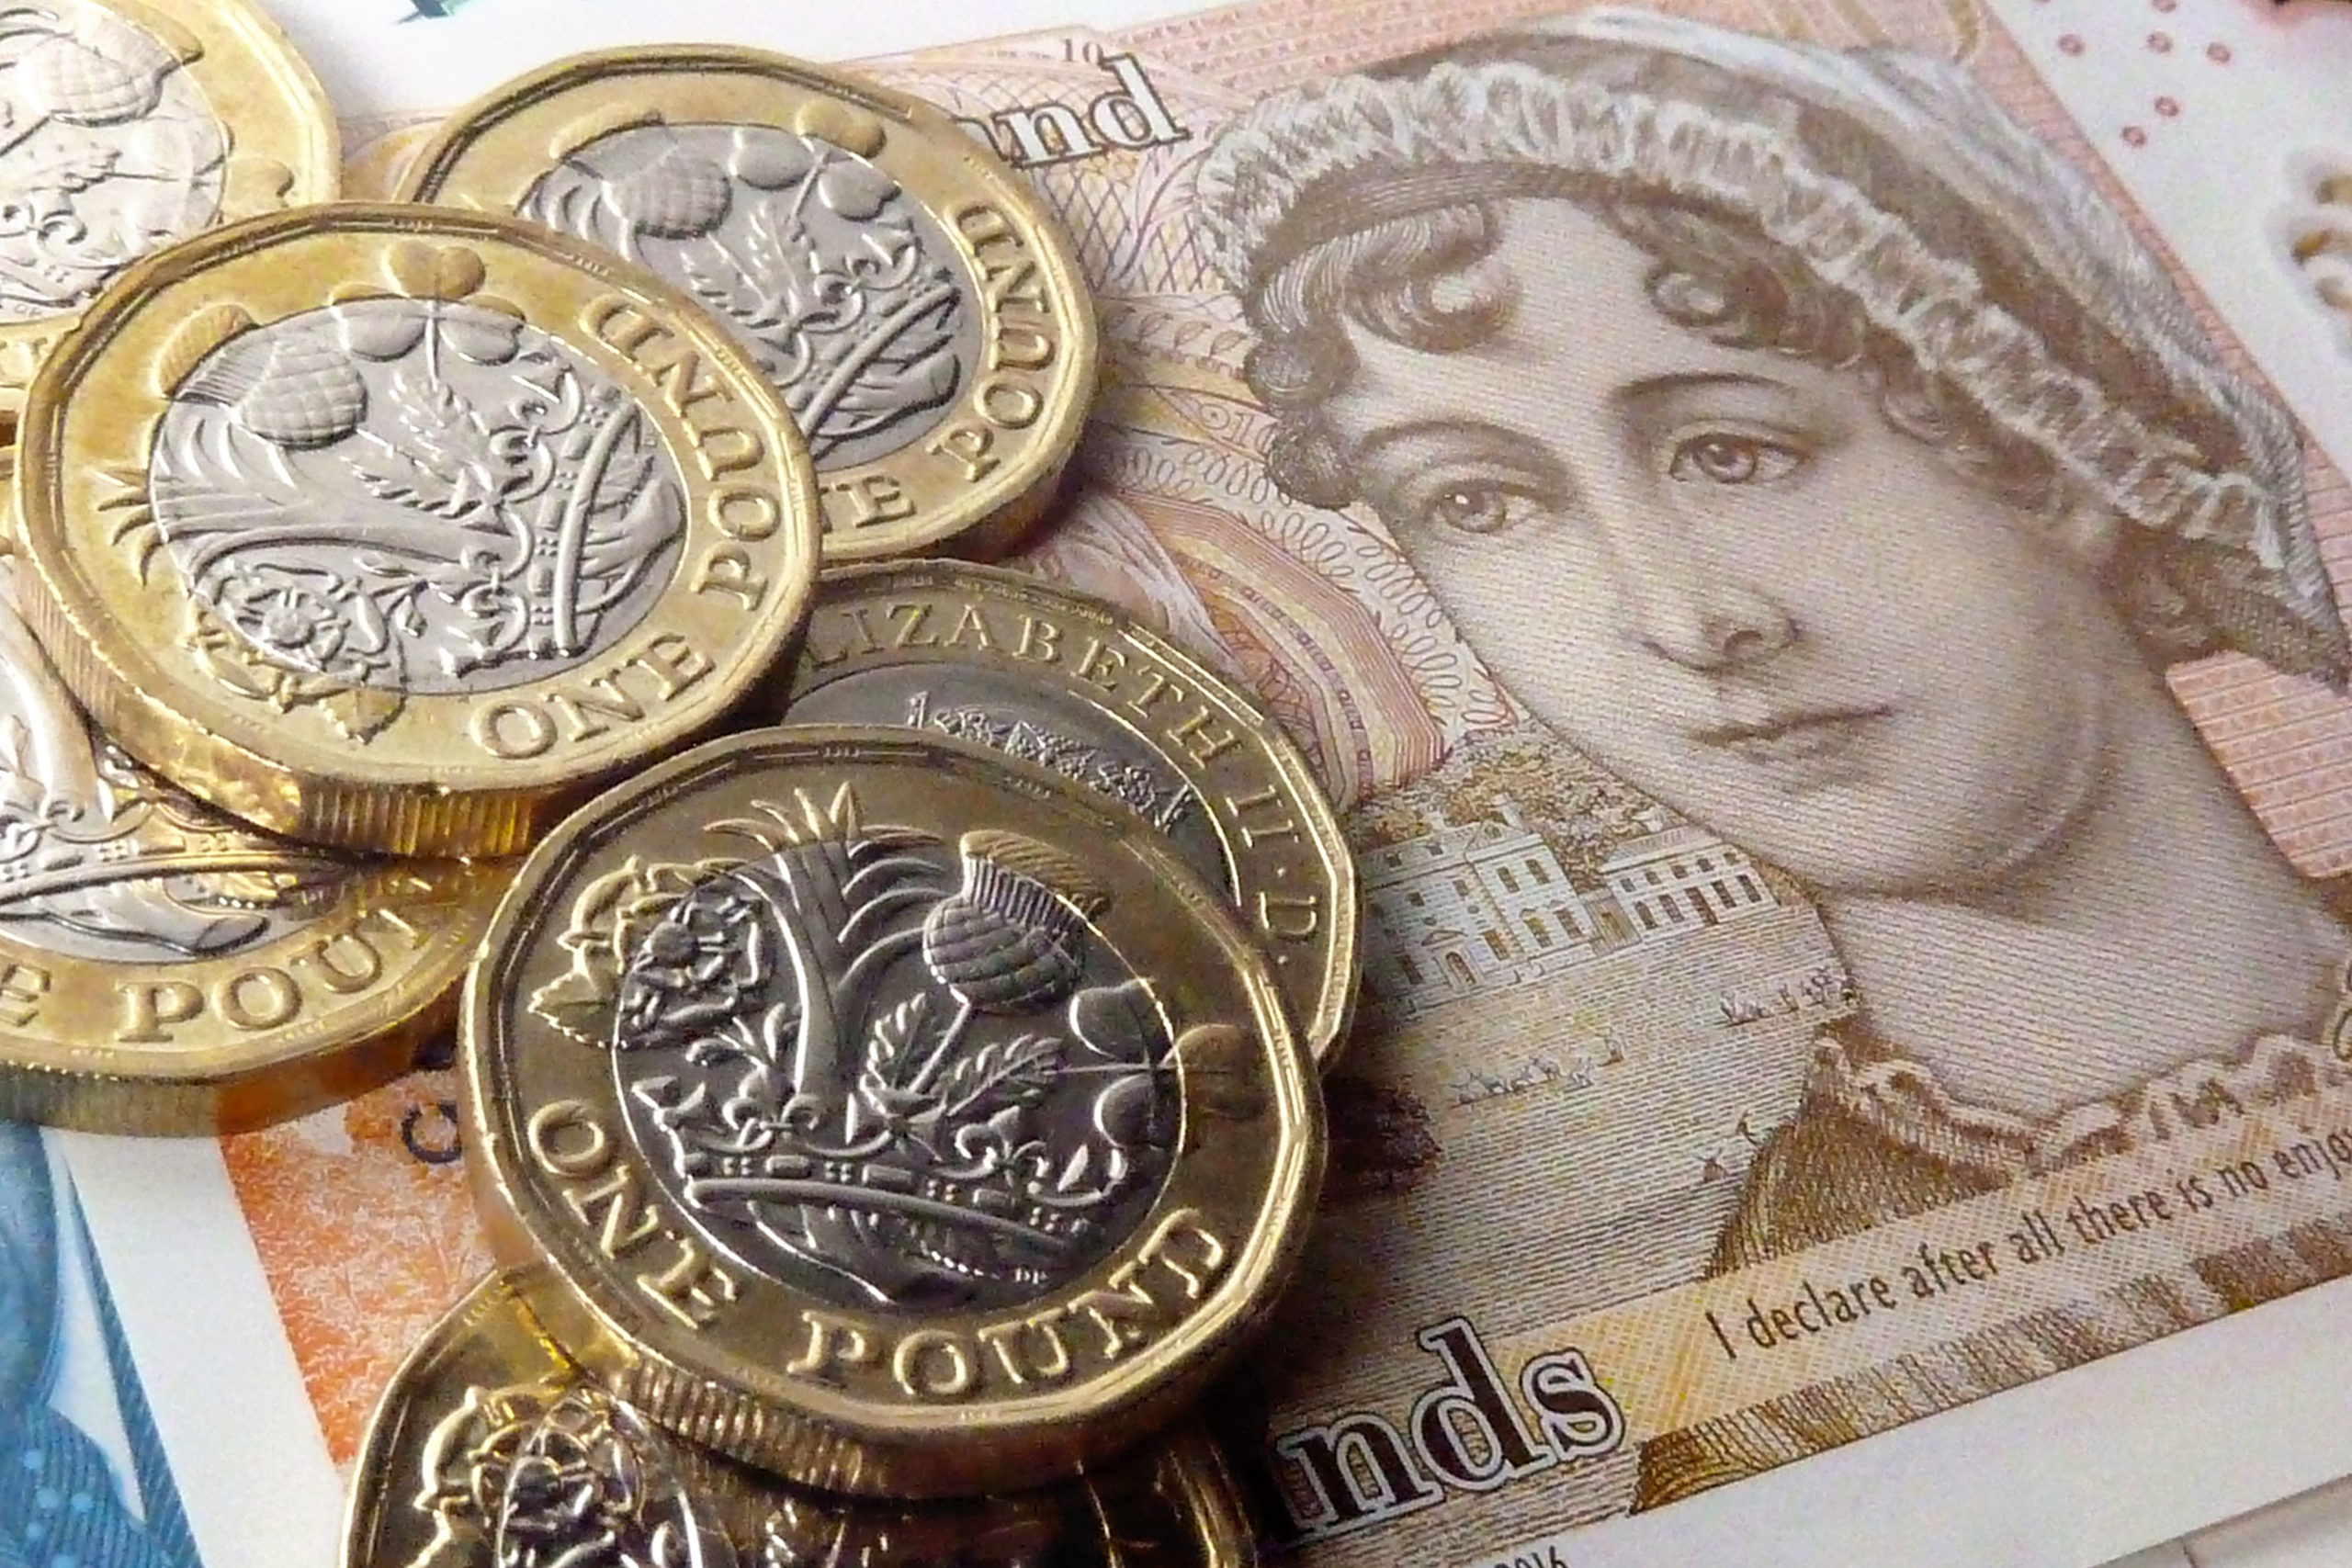 New £10 Note Featuring Jane Austen Is Released Into Circulation